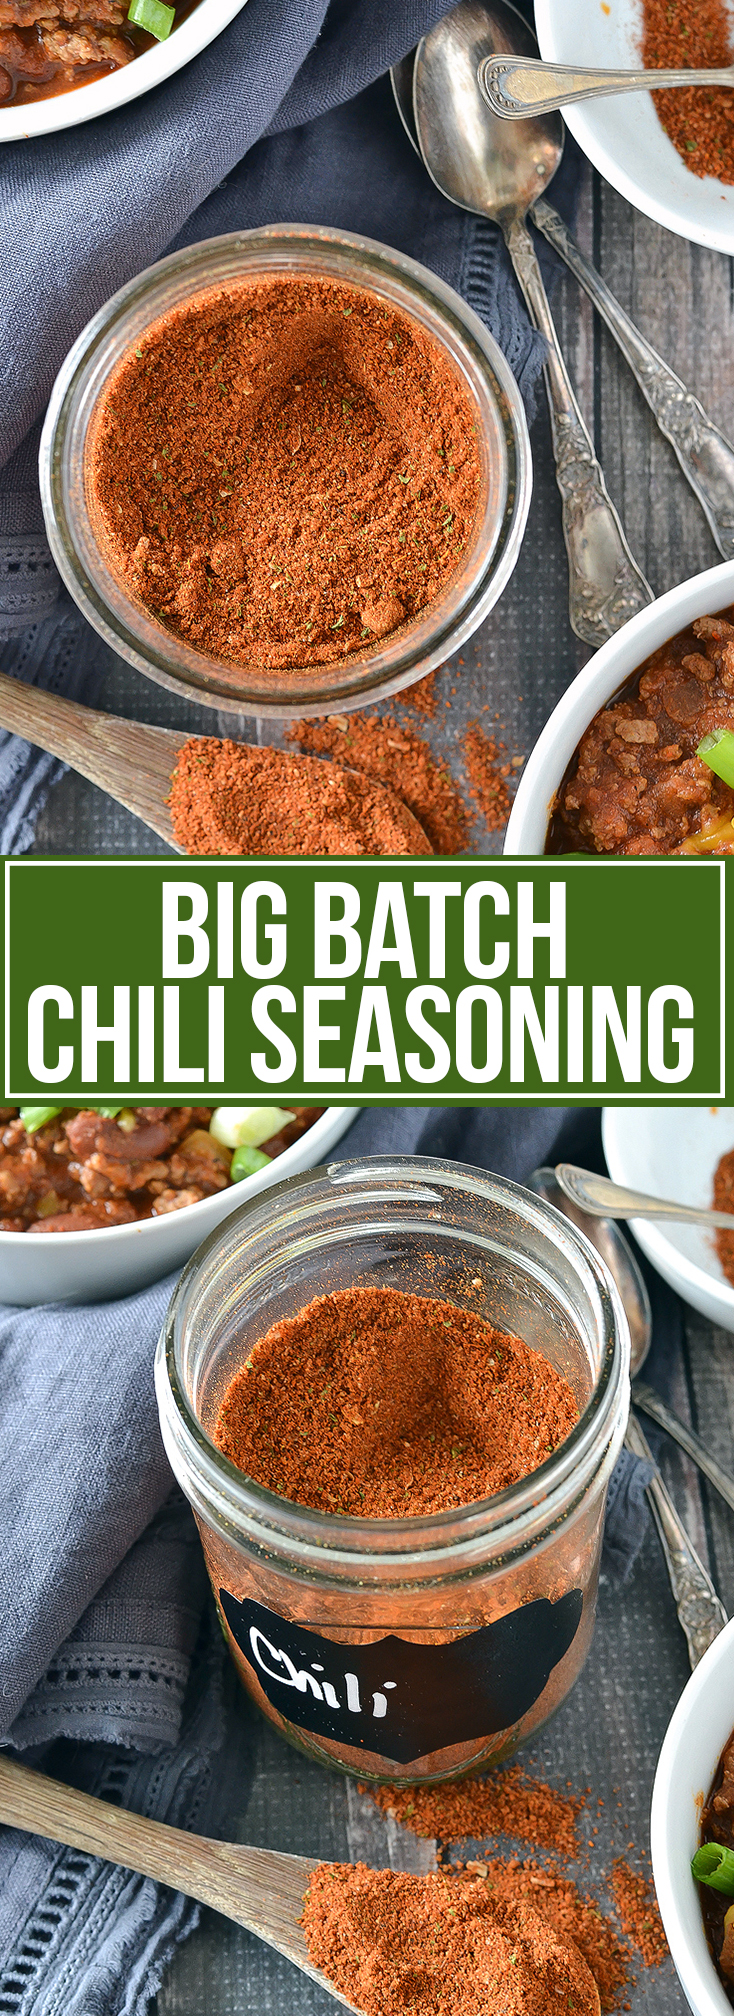 BIG BATCH HOMEMADE CHILI SEASONING